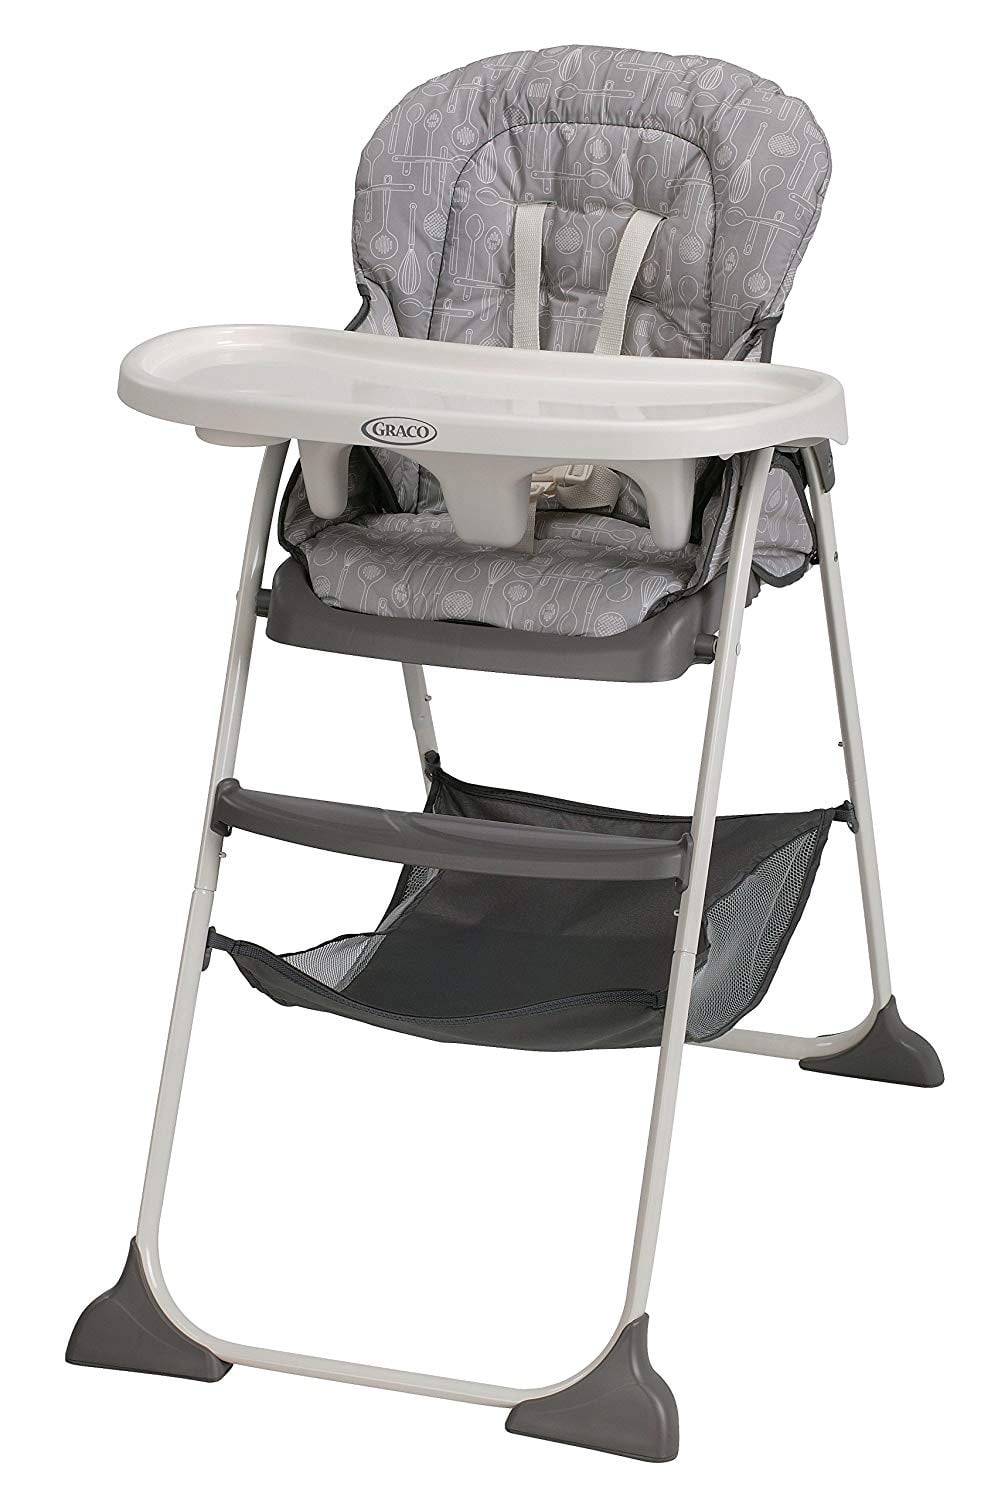 40% off Graco High Chair Sale @ Amazon for $47.01  sc 1 st  Slickdeals & 40% off Graco High Chair Sale @ Amazon for $47.01 - Slickdeals.net